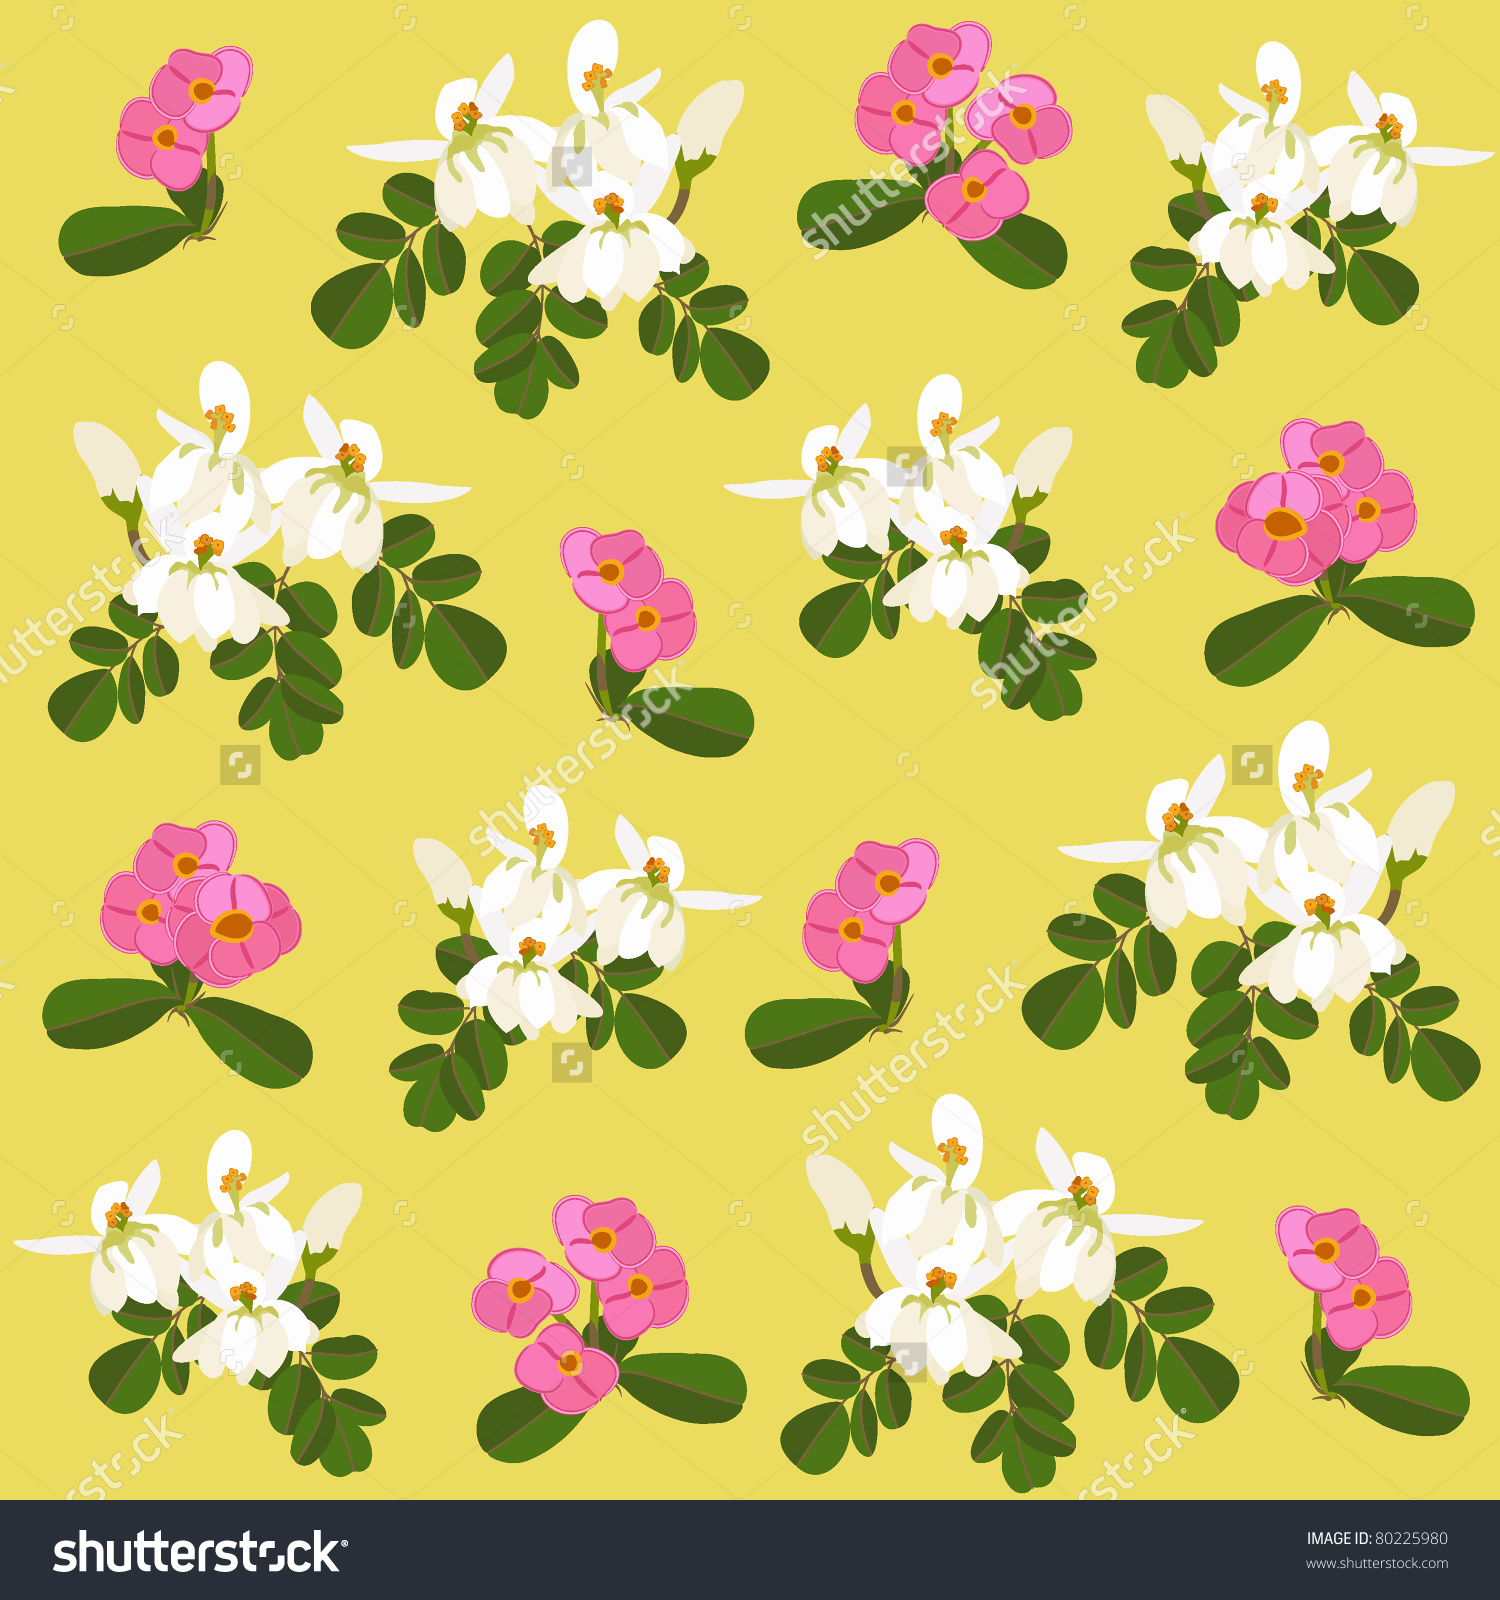 Moringa Tree And Spurge Flowers Stock Vector Illustration 80225980.